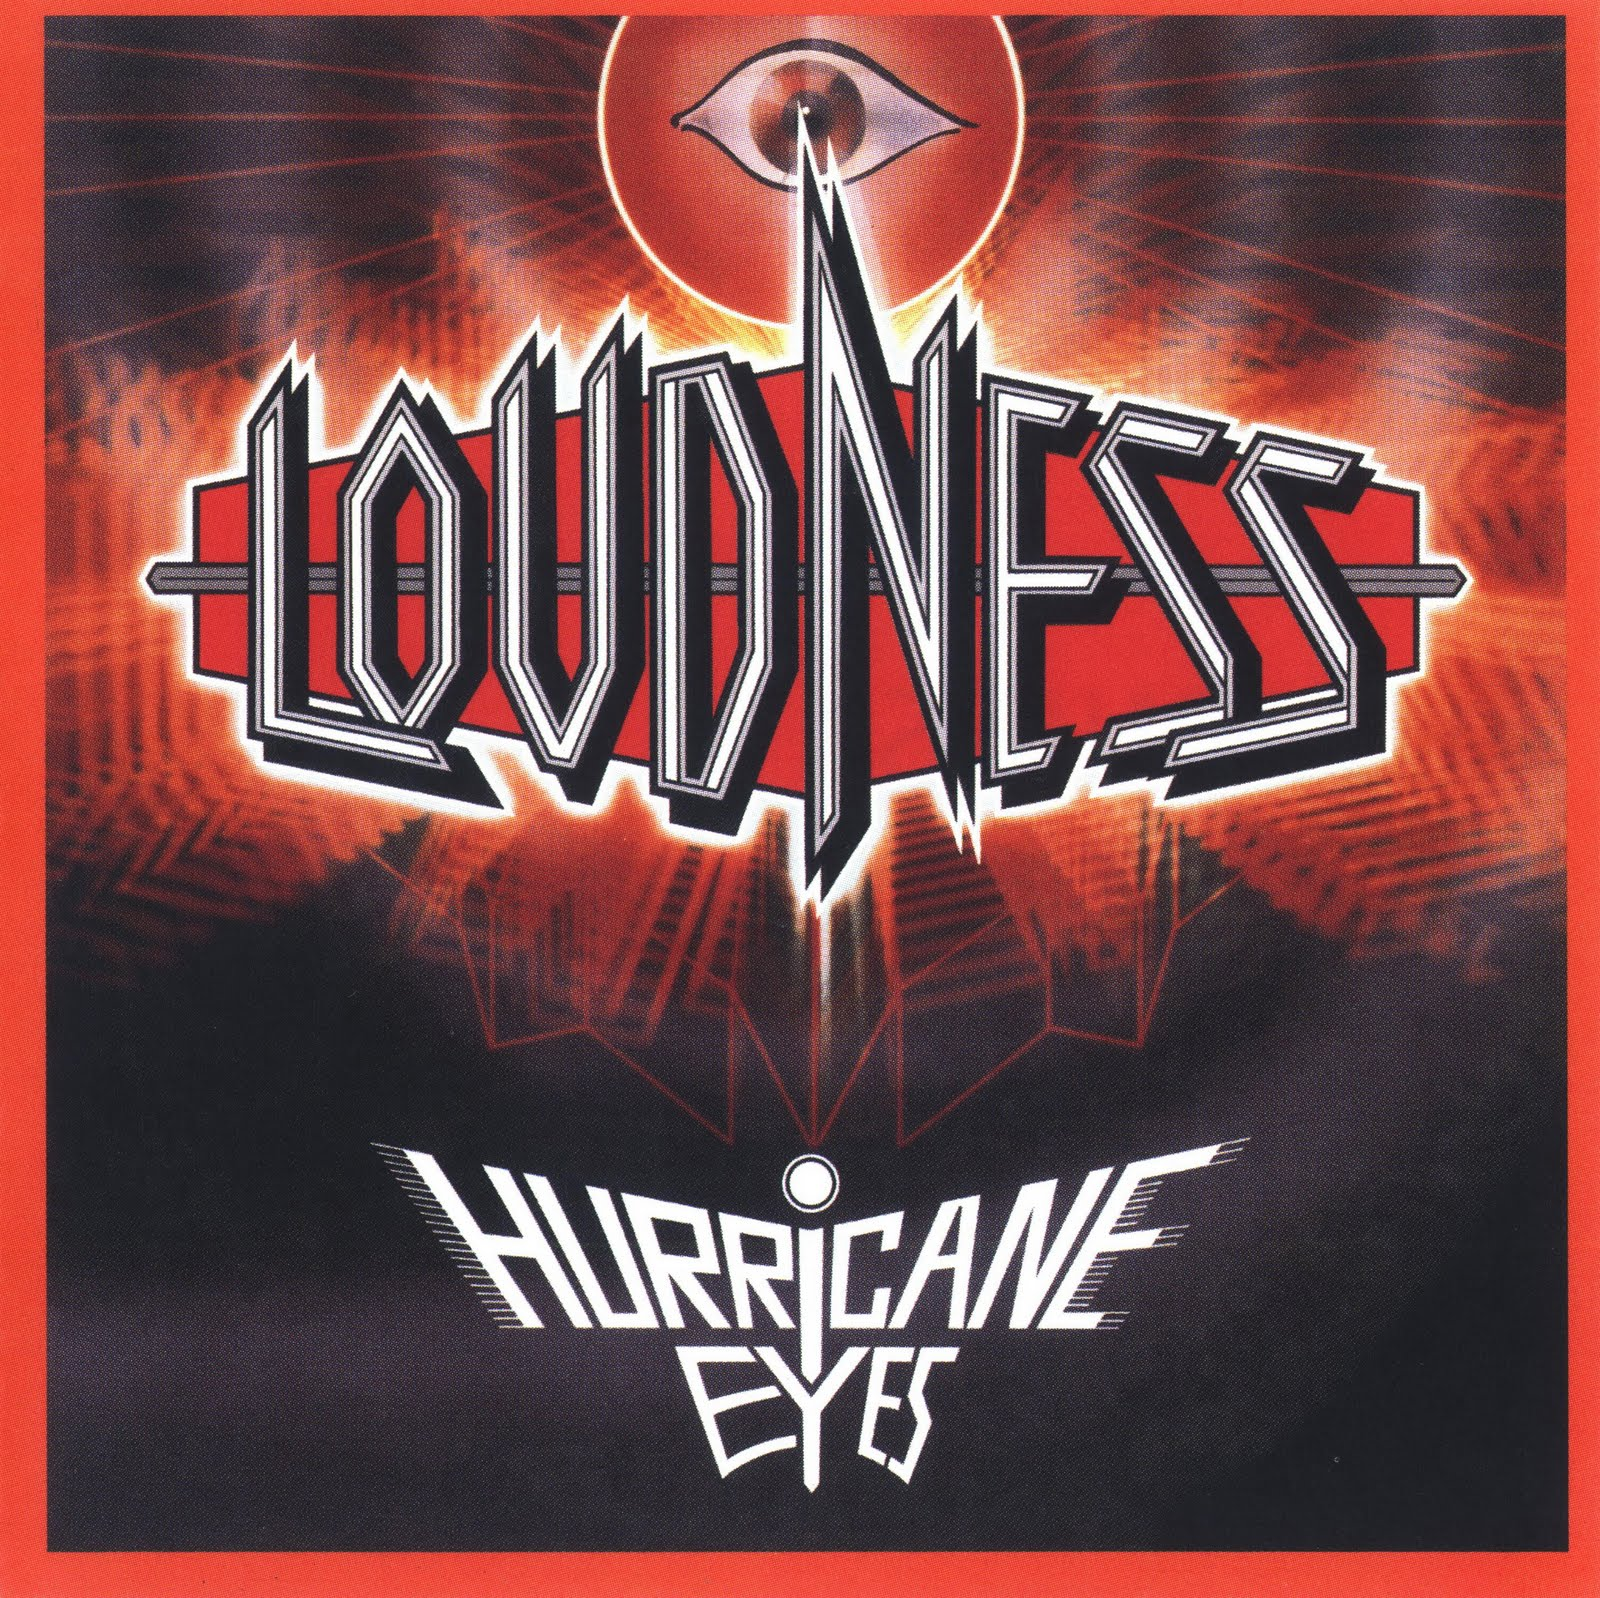 LOUDNESS - DISCOGRAPHY [320 Kbps] | 悪魔の音楽